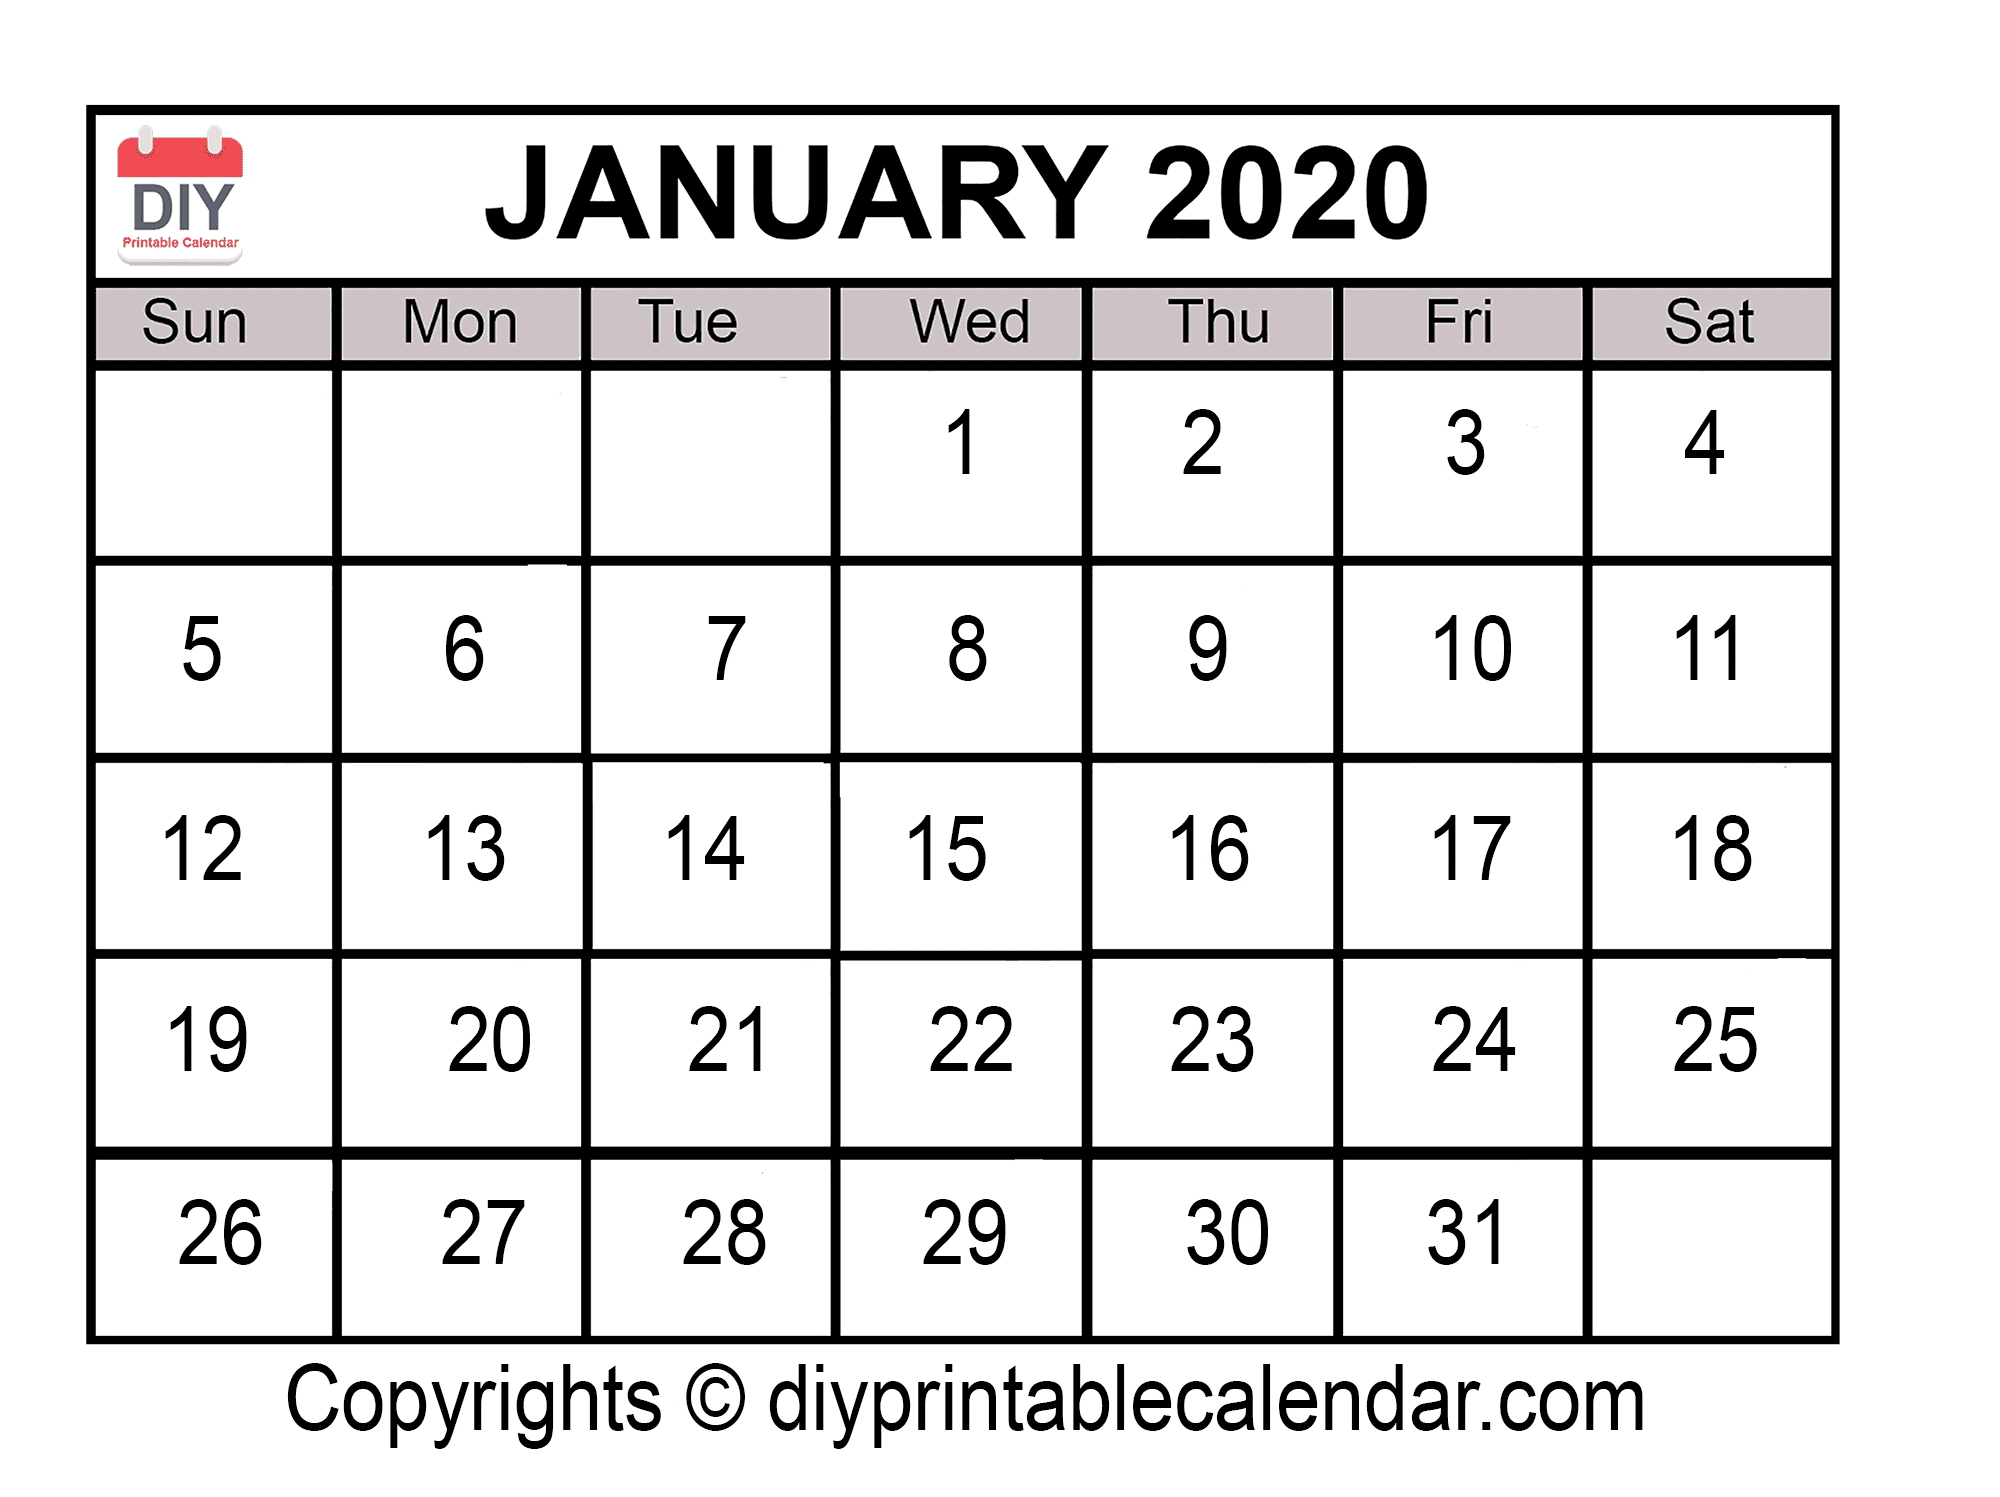 Download January 2020 Printable Calendar